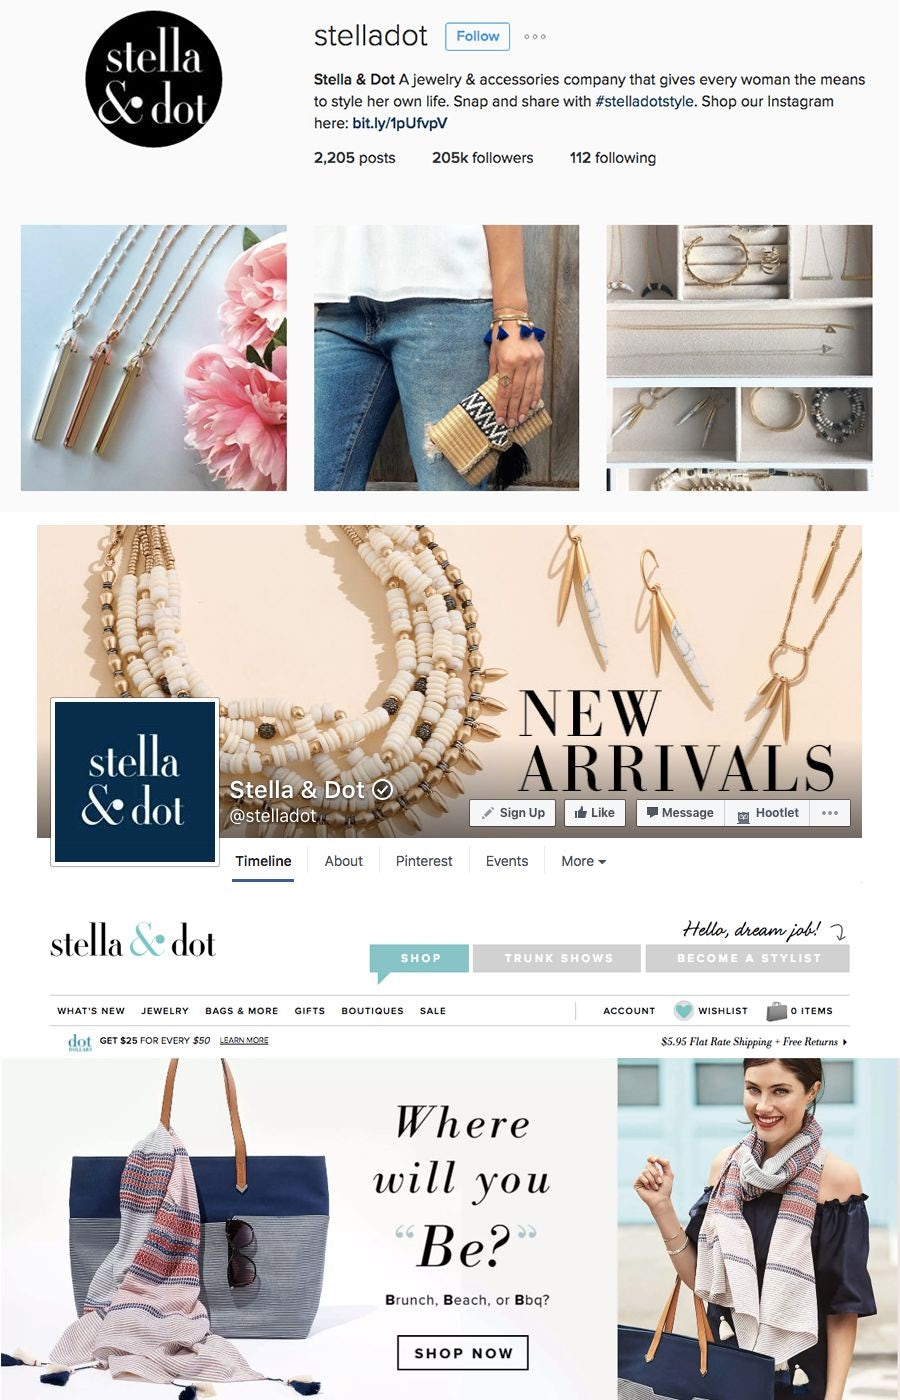 stella & dot design aesthetic